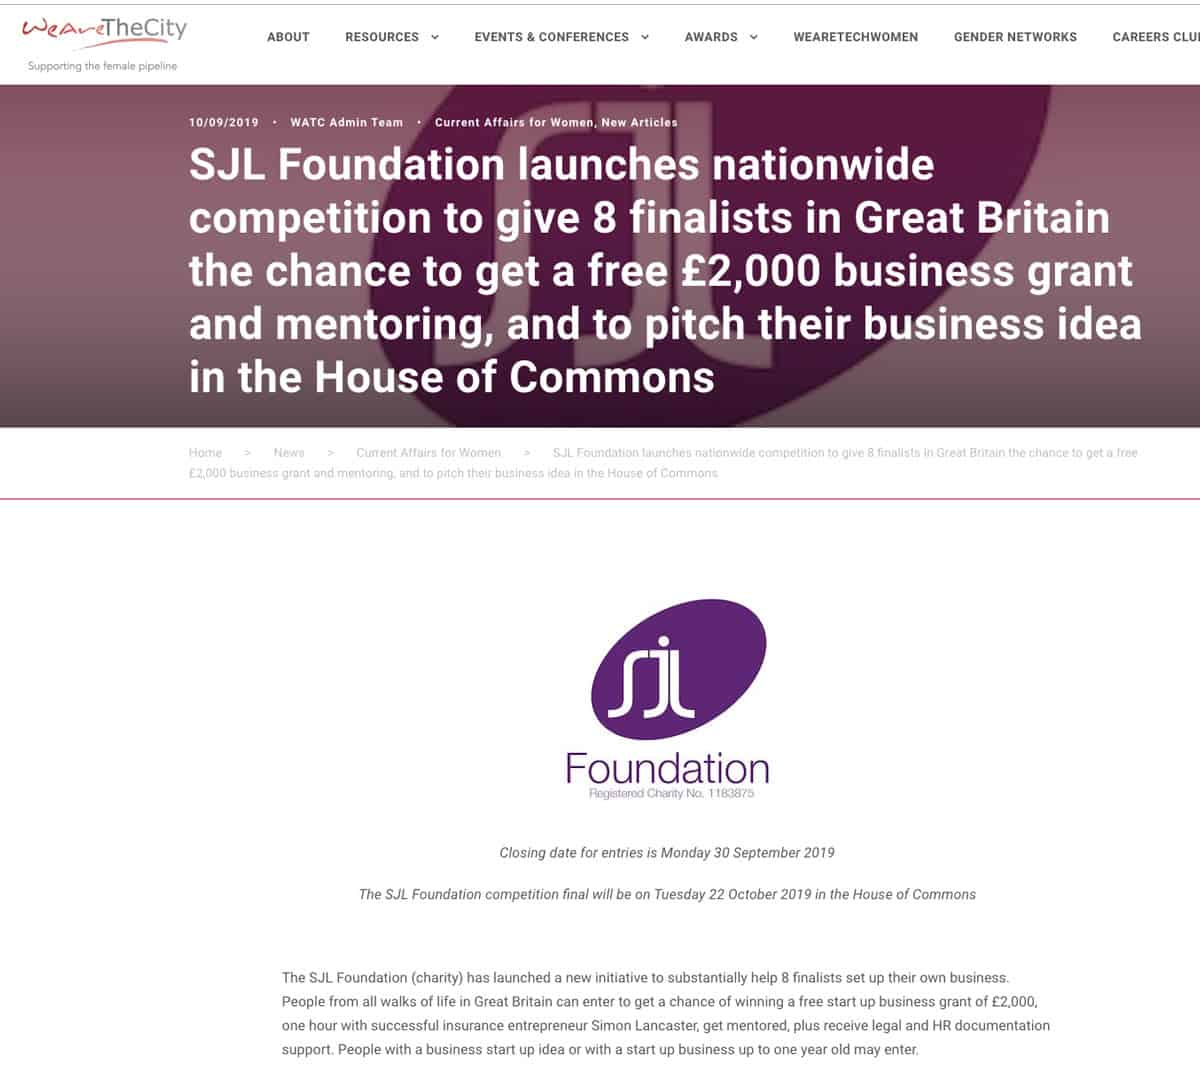 Nationwide-Competition-business-grants-mentoring-Great-Britain-SJL-Foundation